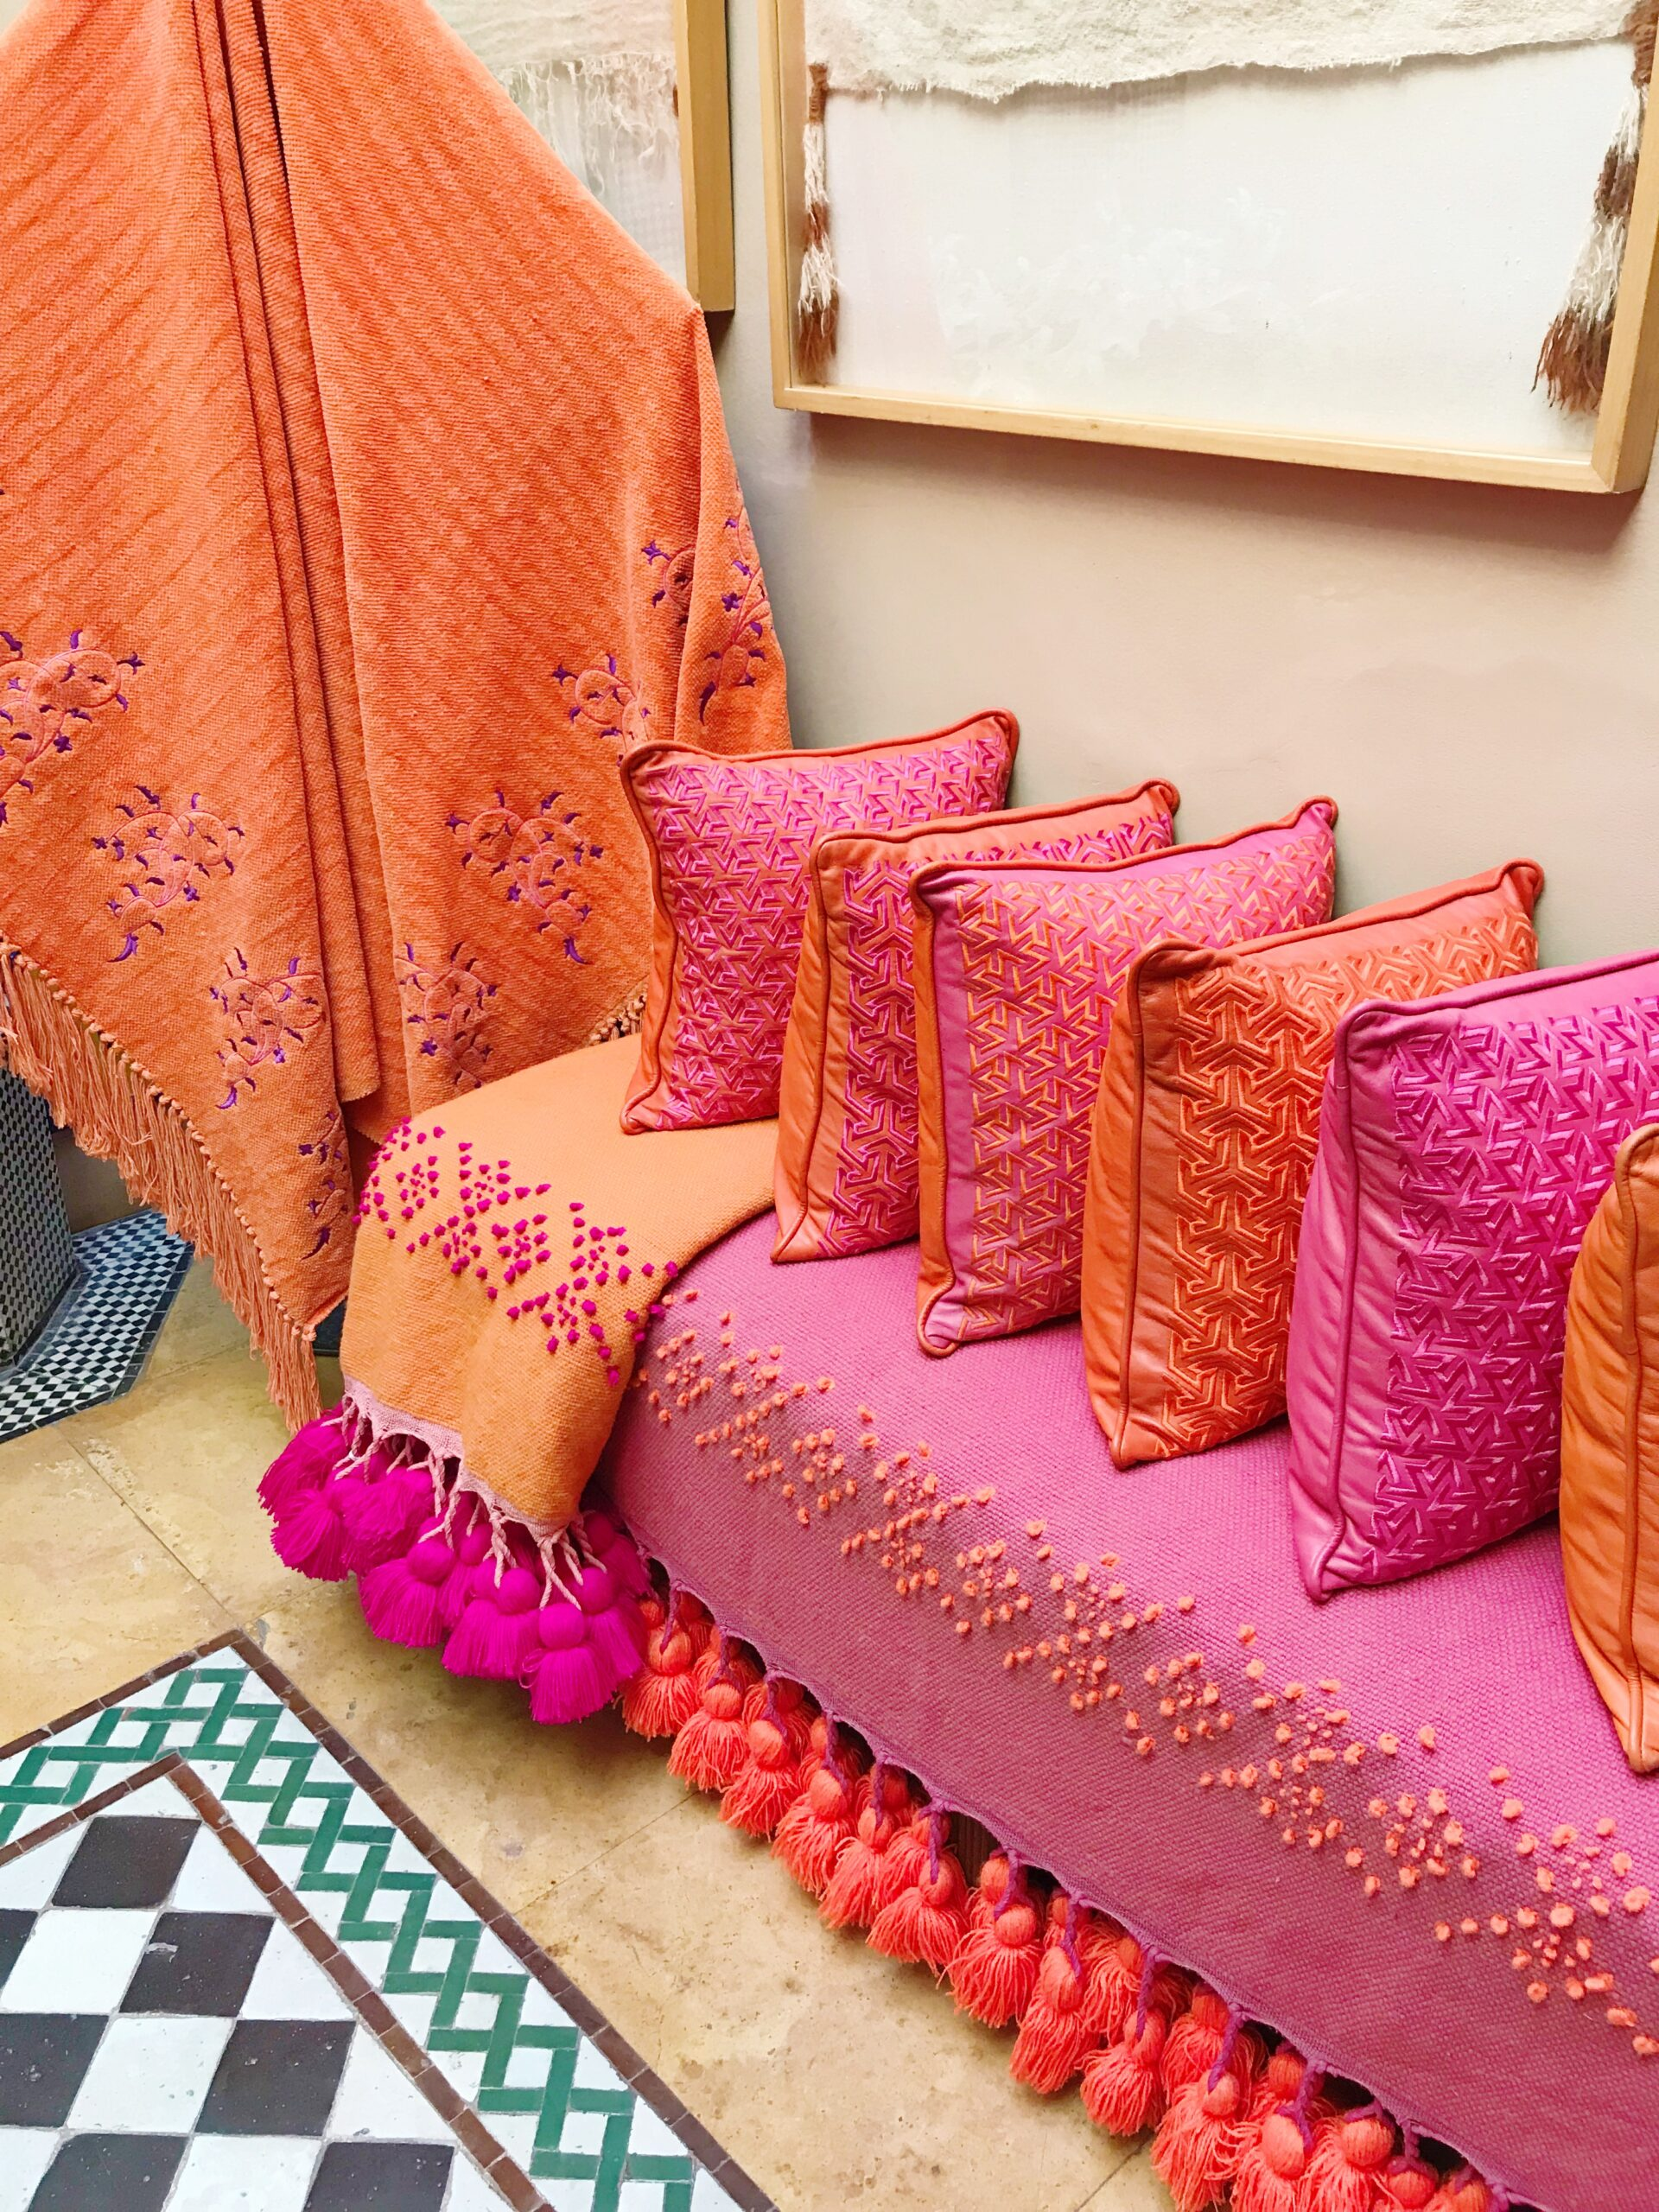 Pink and Orange Pillows - Textiles at Majorelle Garden